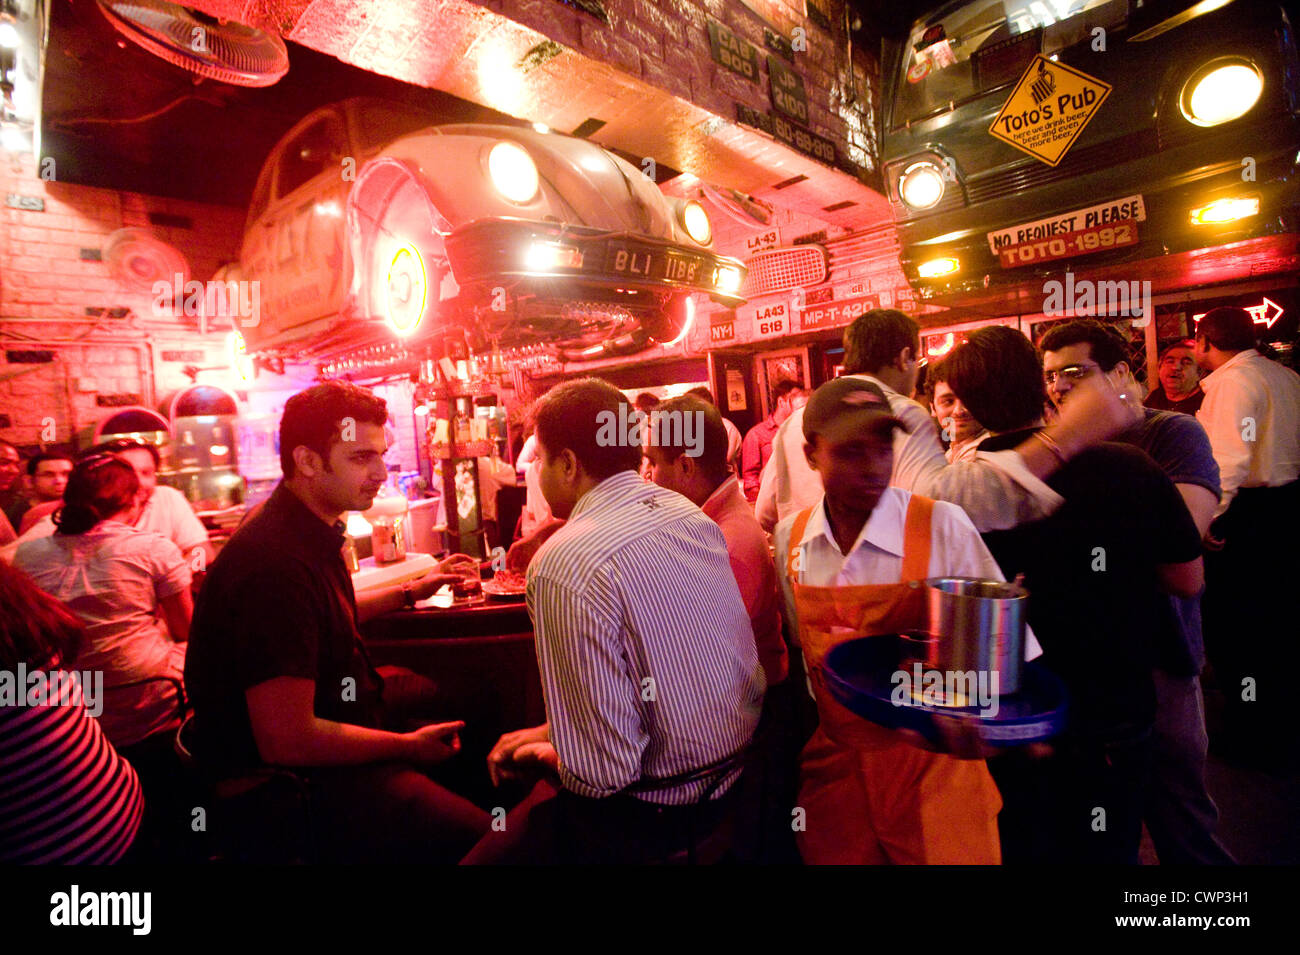 Toto\'s Pub Bar and Garage, Bandra , Mumbai India Stock Photo ...